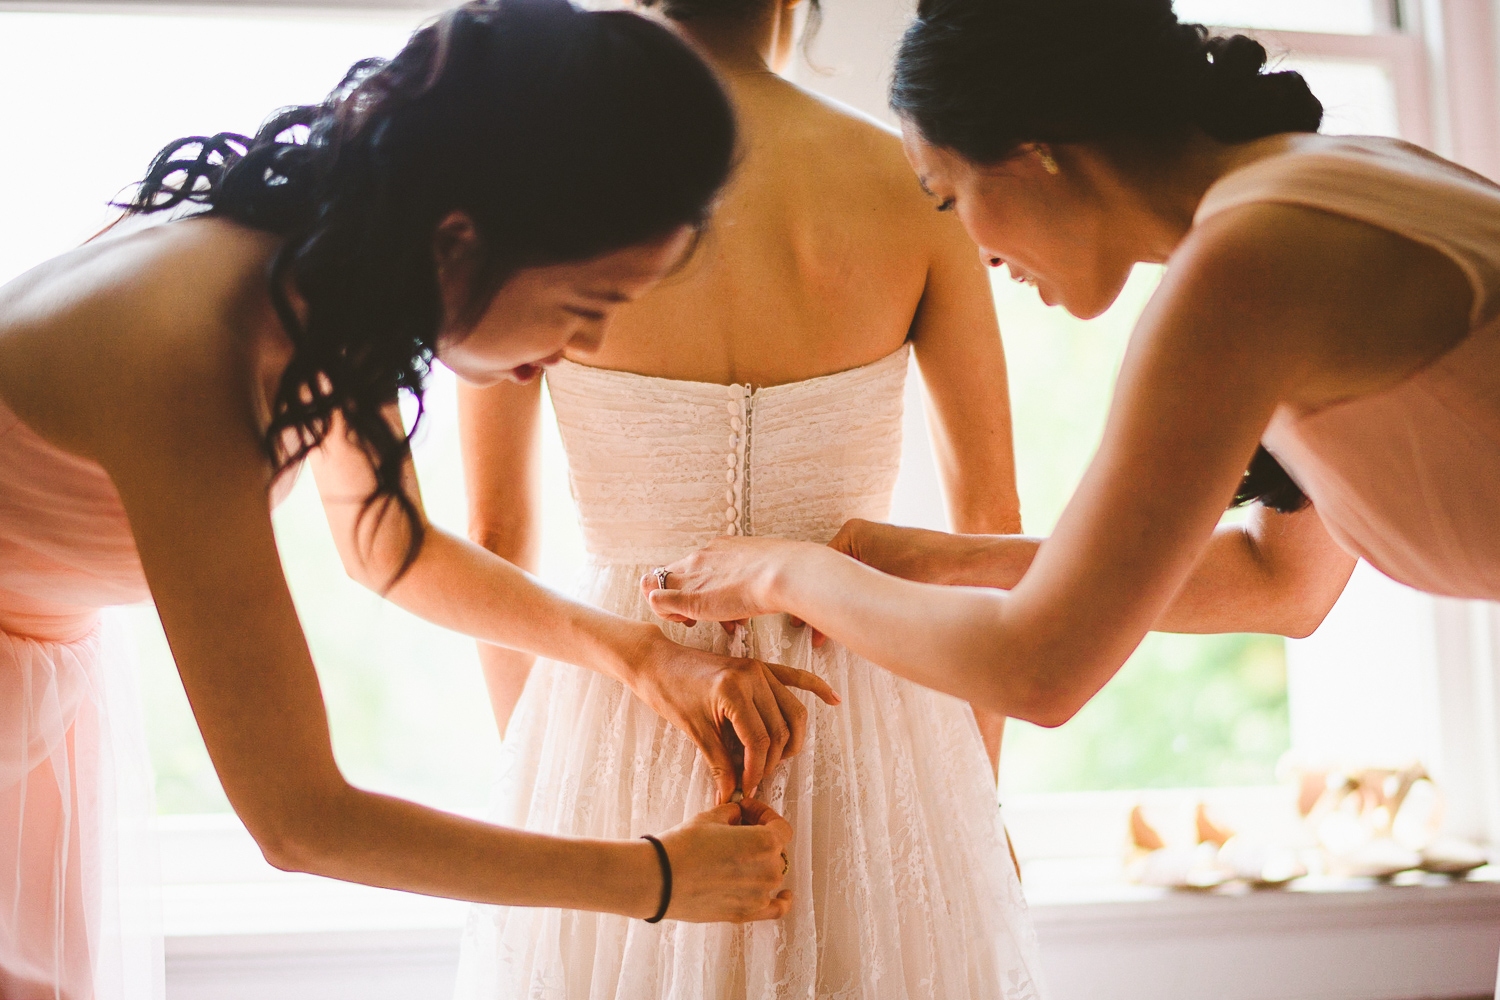 006 - bridesmaids helping the bride button up her wedding dress.jpg